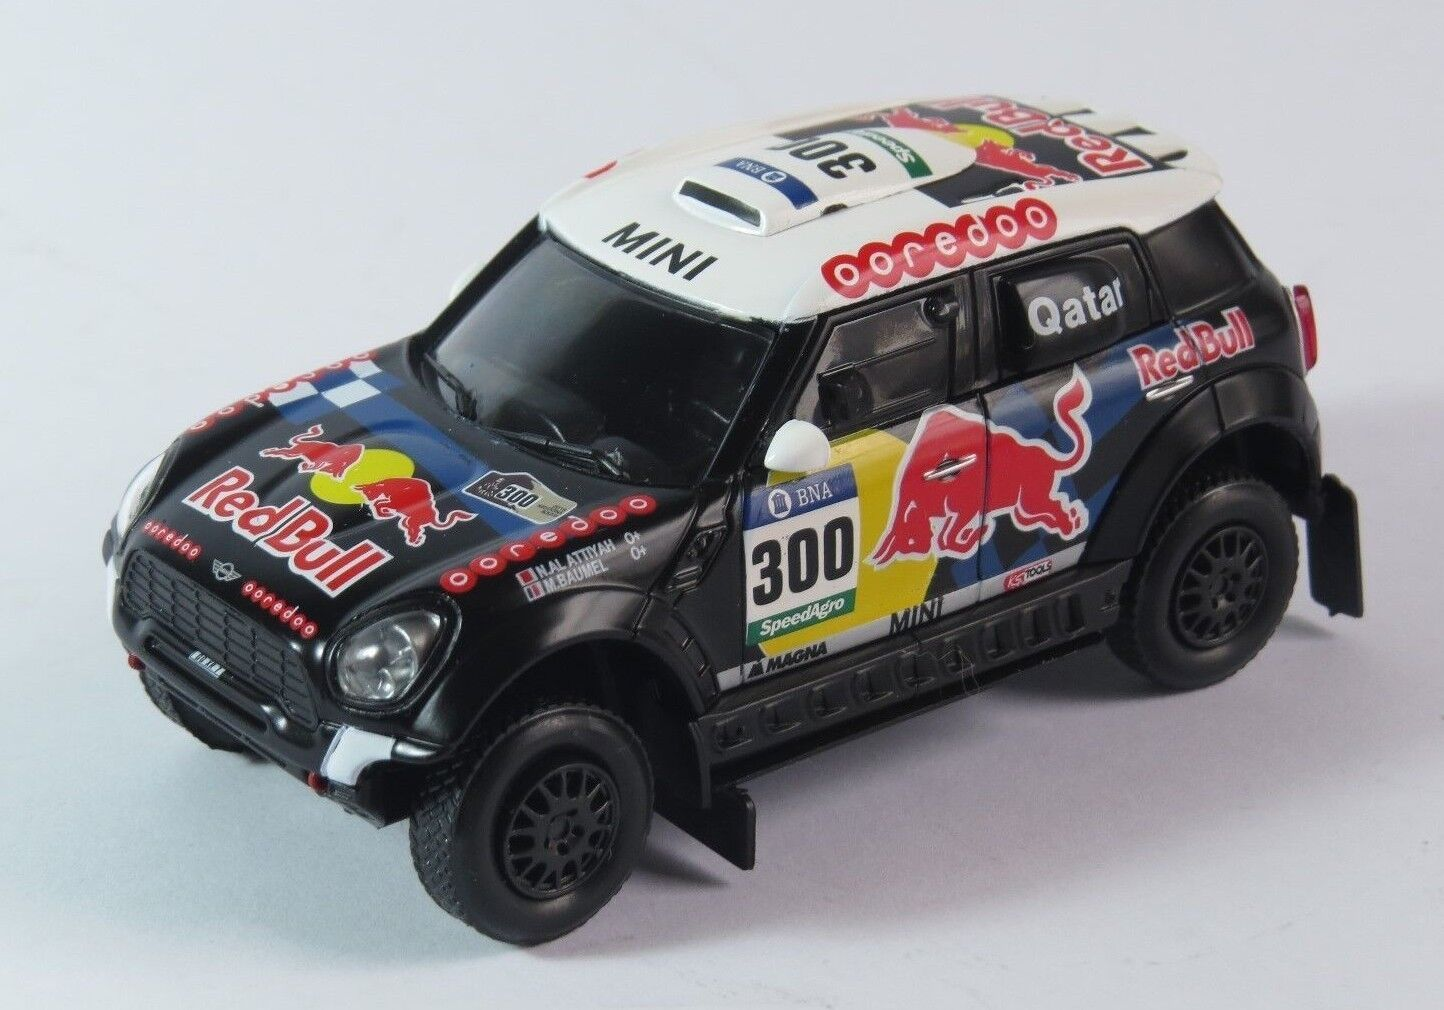 MINI ALL4 RACING 1 43 IXO, NASSER DAKAR 2016, DIECAST, METAL, NEW IN BOX.